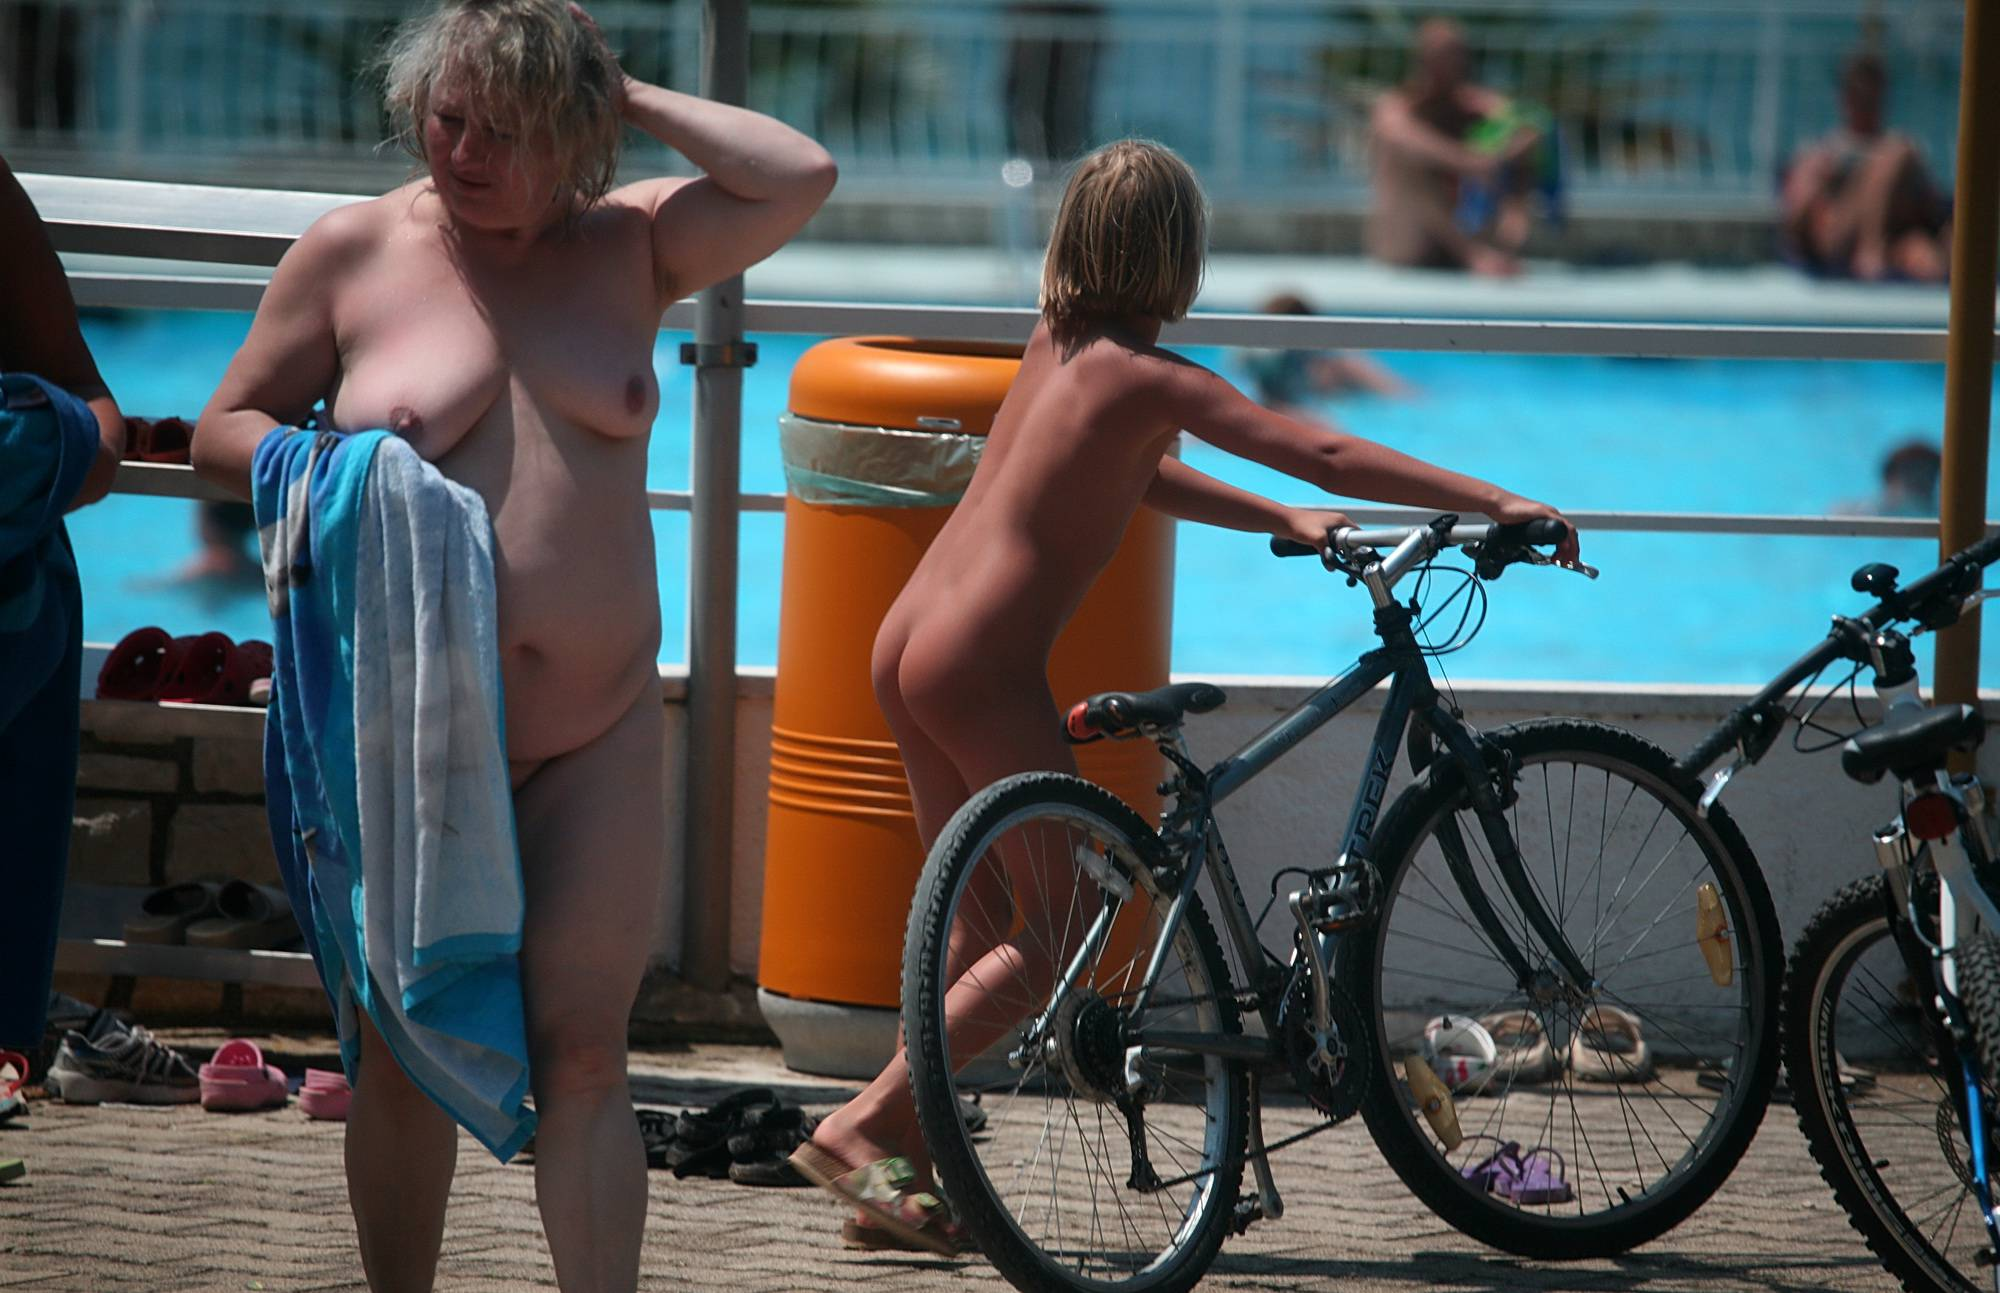 Nudist Pictures Outdoor Scooters and Bikes - 1